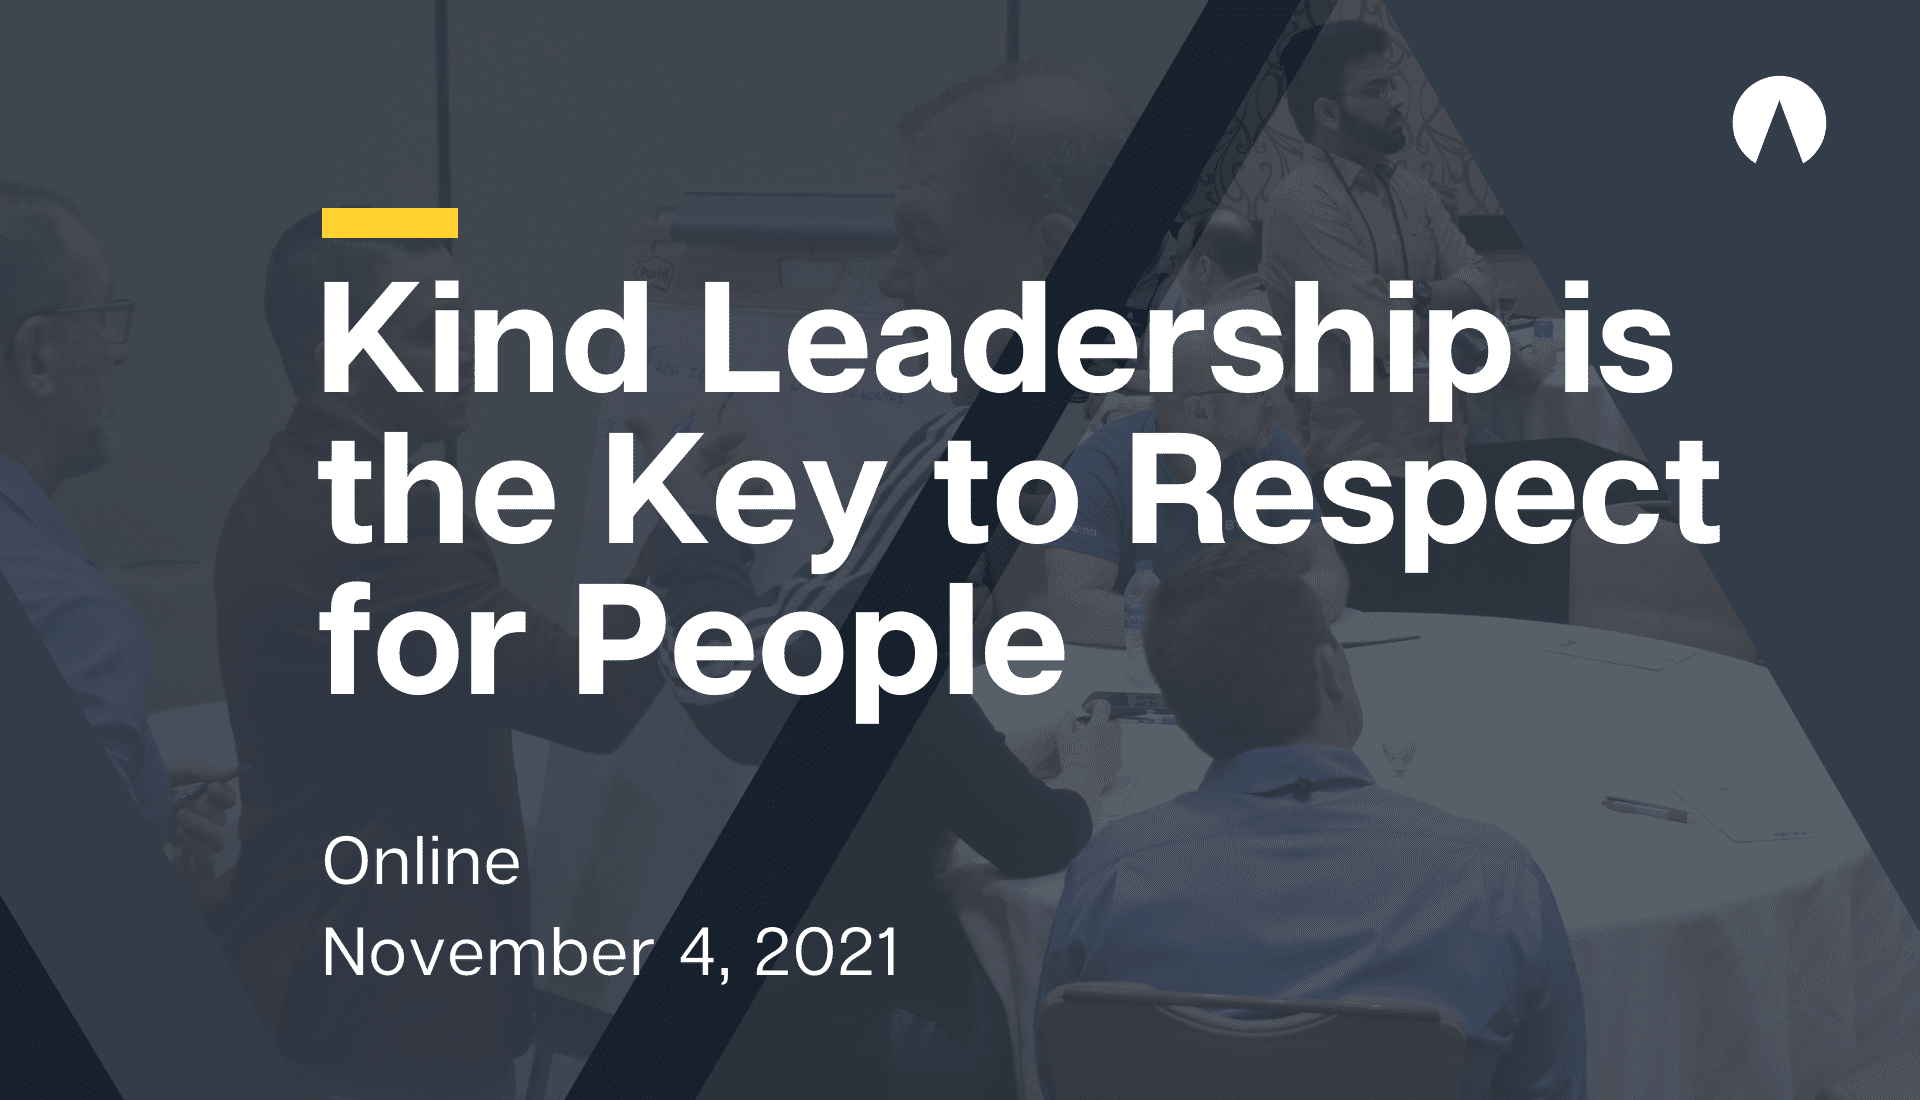 Kind Leadership is the Key to Respect for People